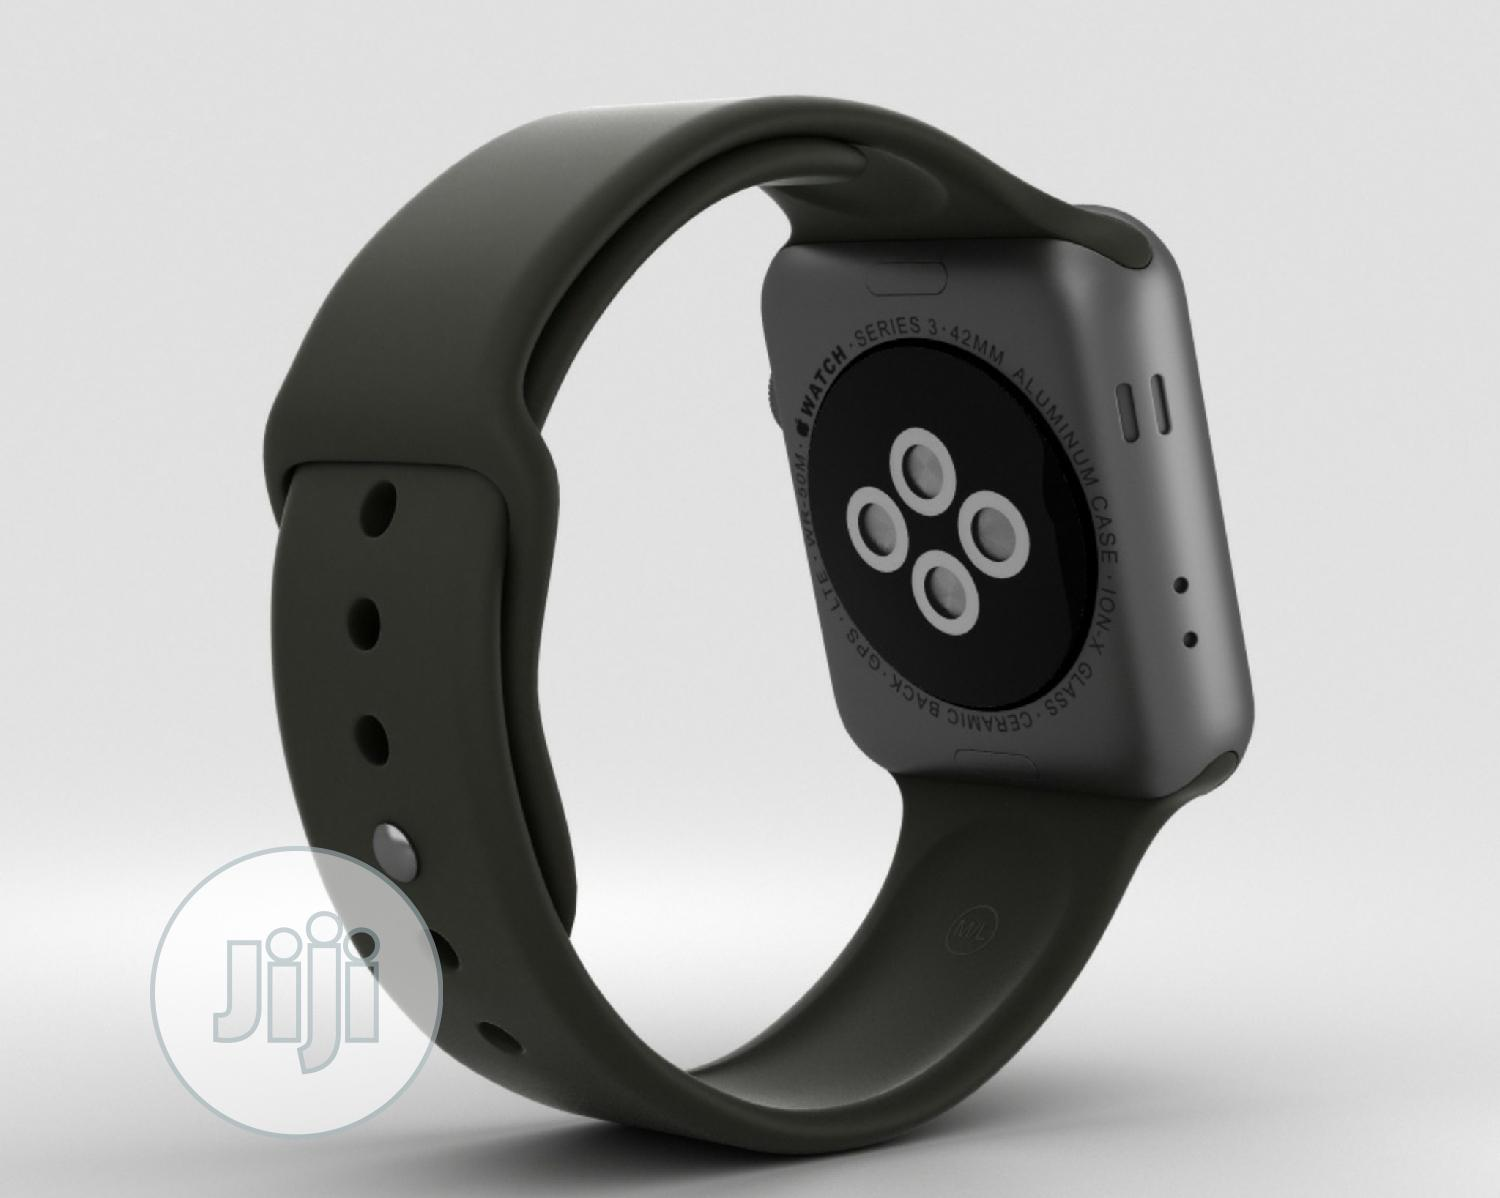 Apple Watch Series 3 (GPS + Cellular) With Black Sport Band   Smart Watches & Trackers for sale in Alimosho, Lagos State, Nigeria